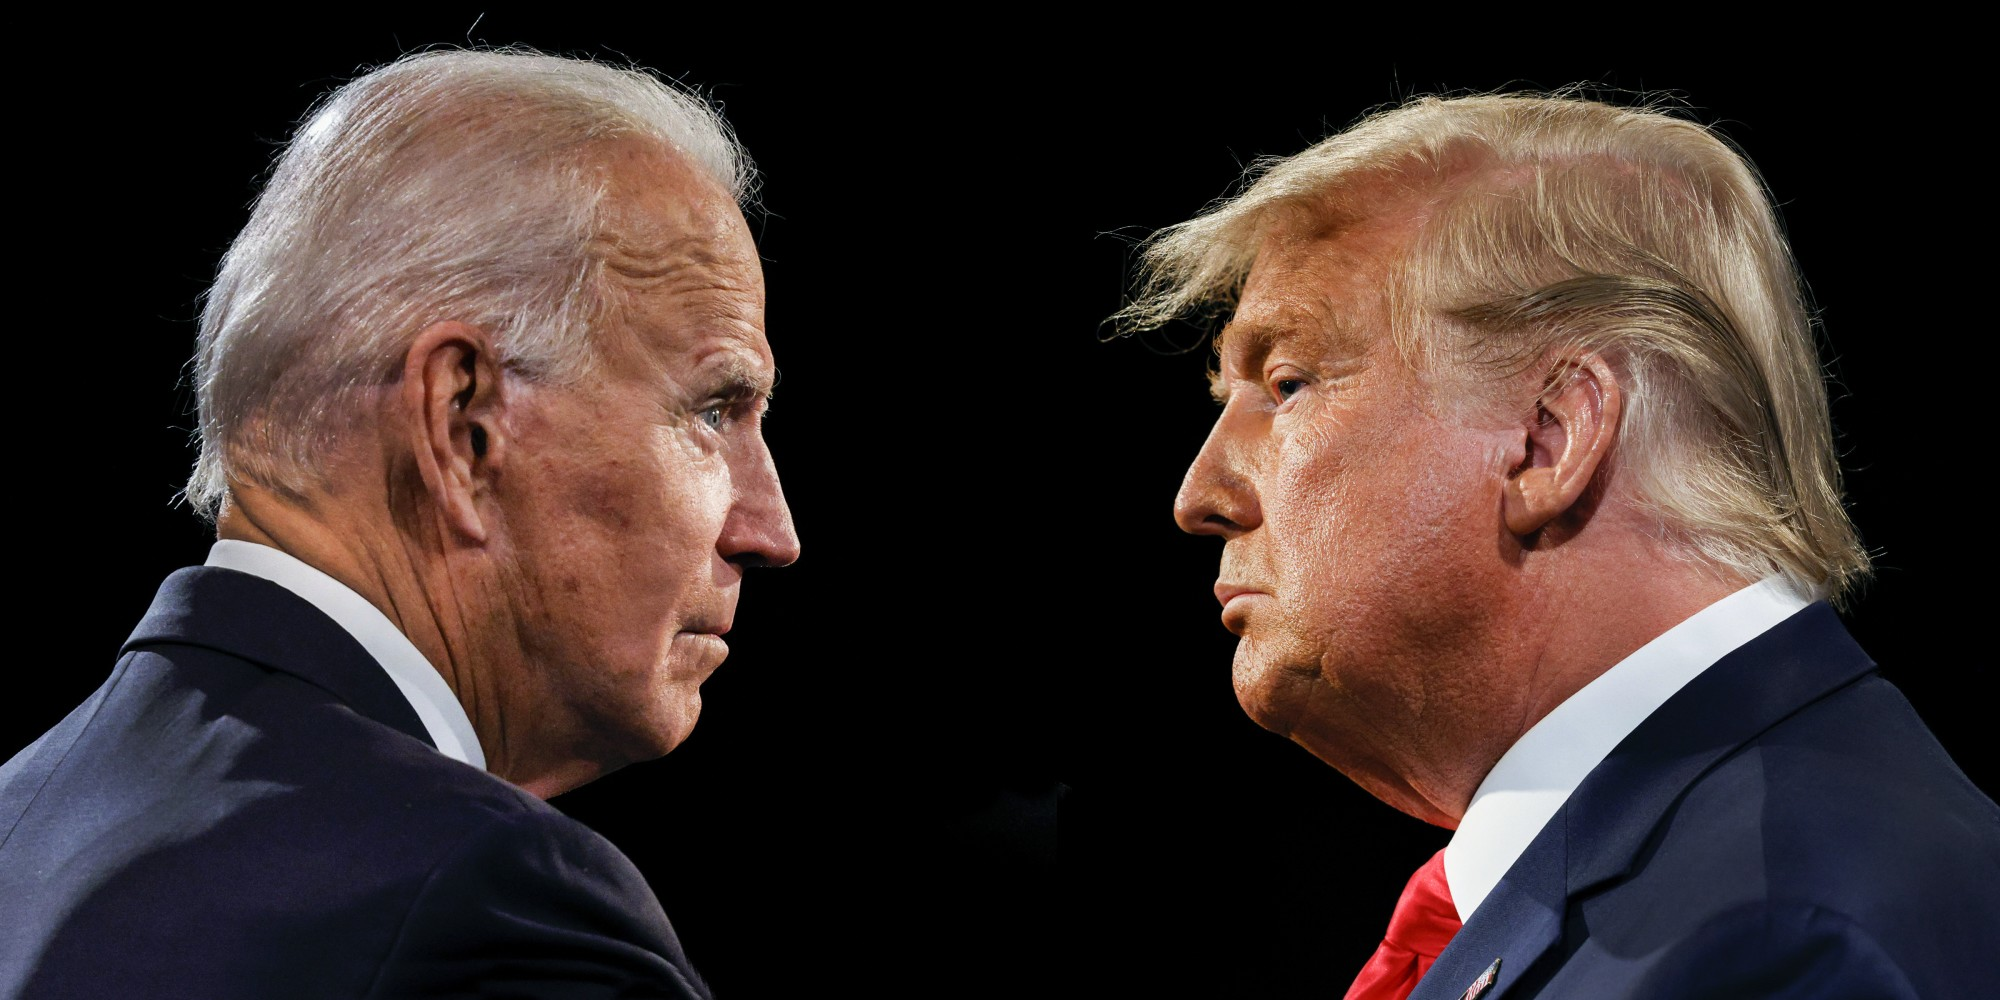 Either Joe Biden or Donald Trump can still win the Elections